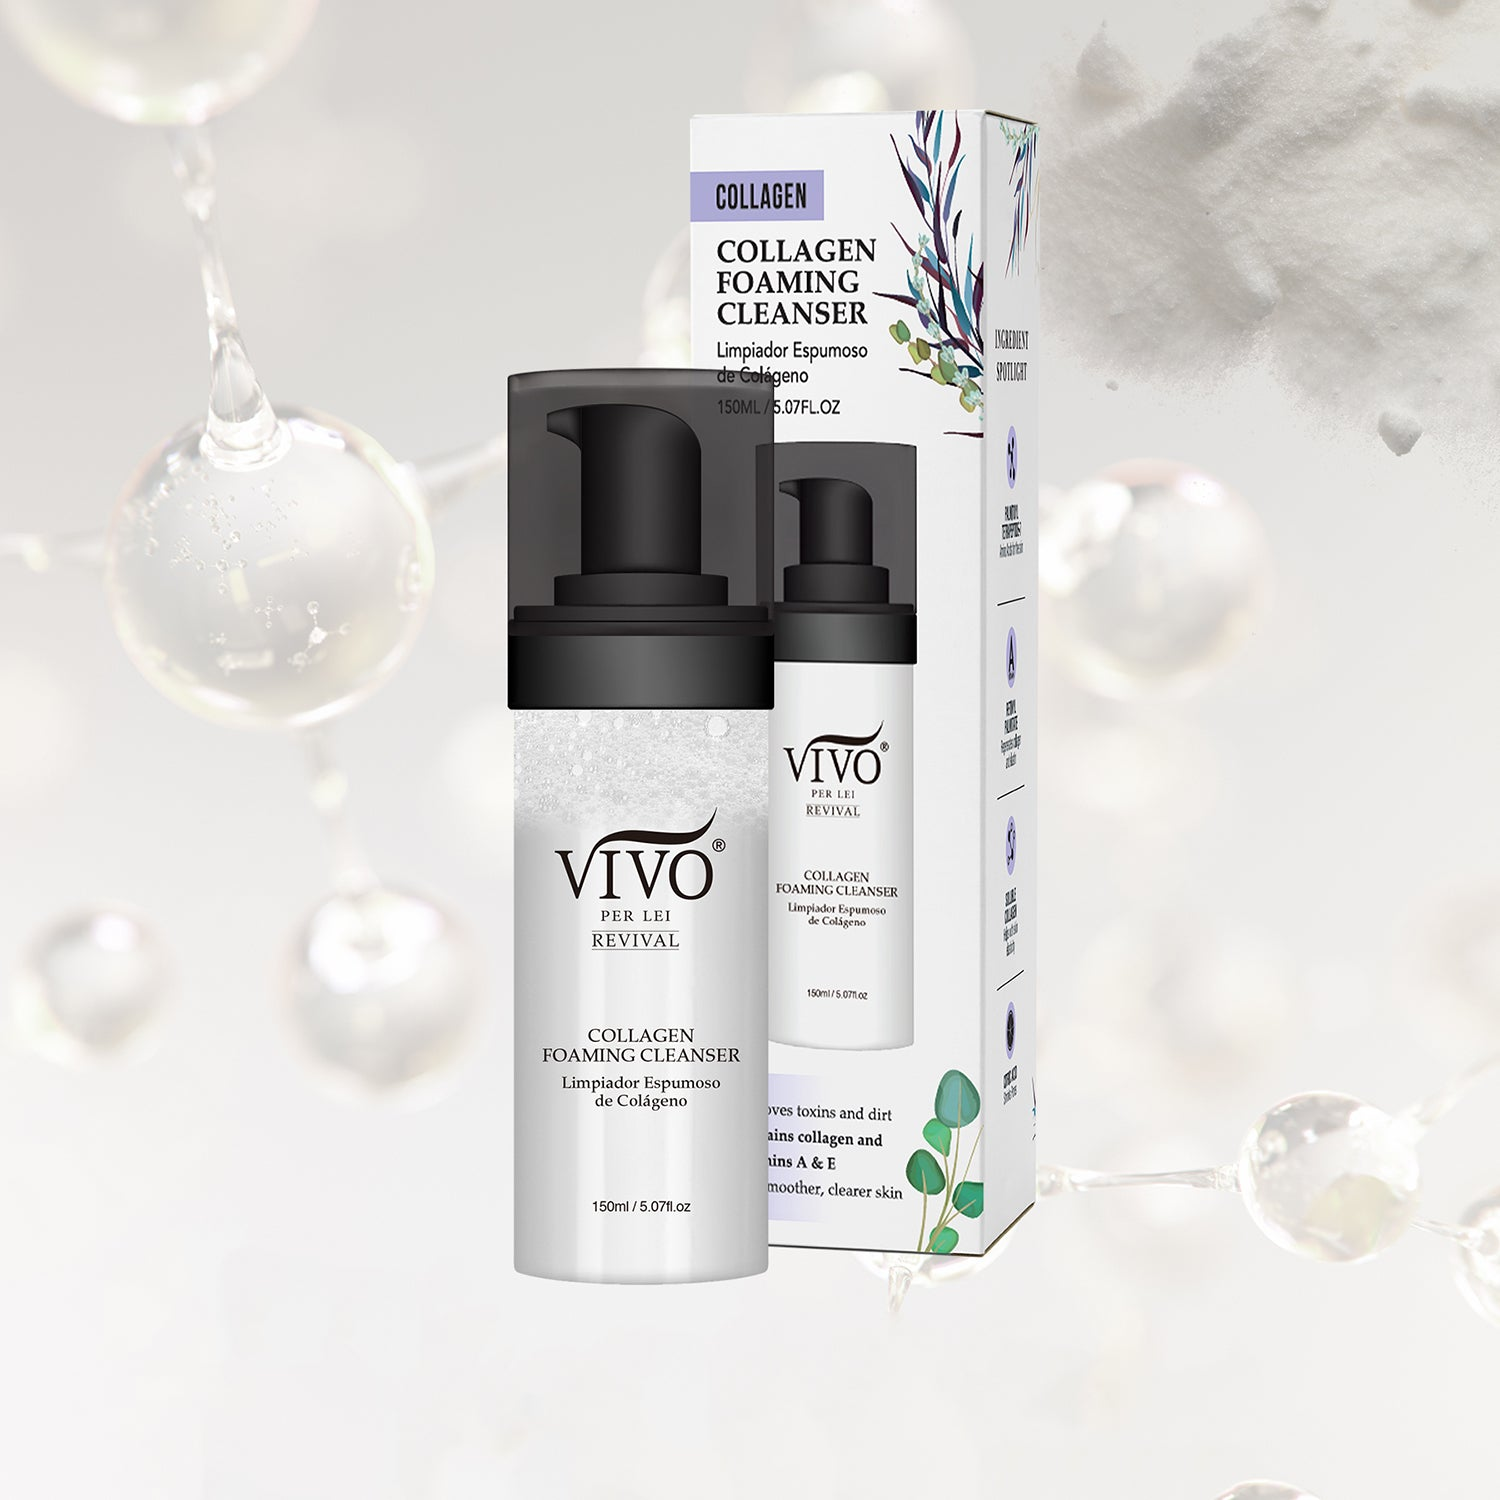 Vivo Per Lei Foaming Cleanser